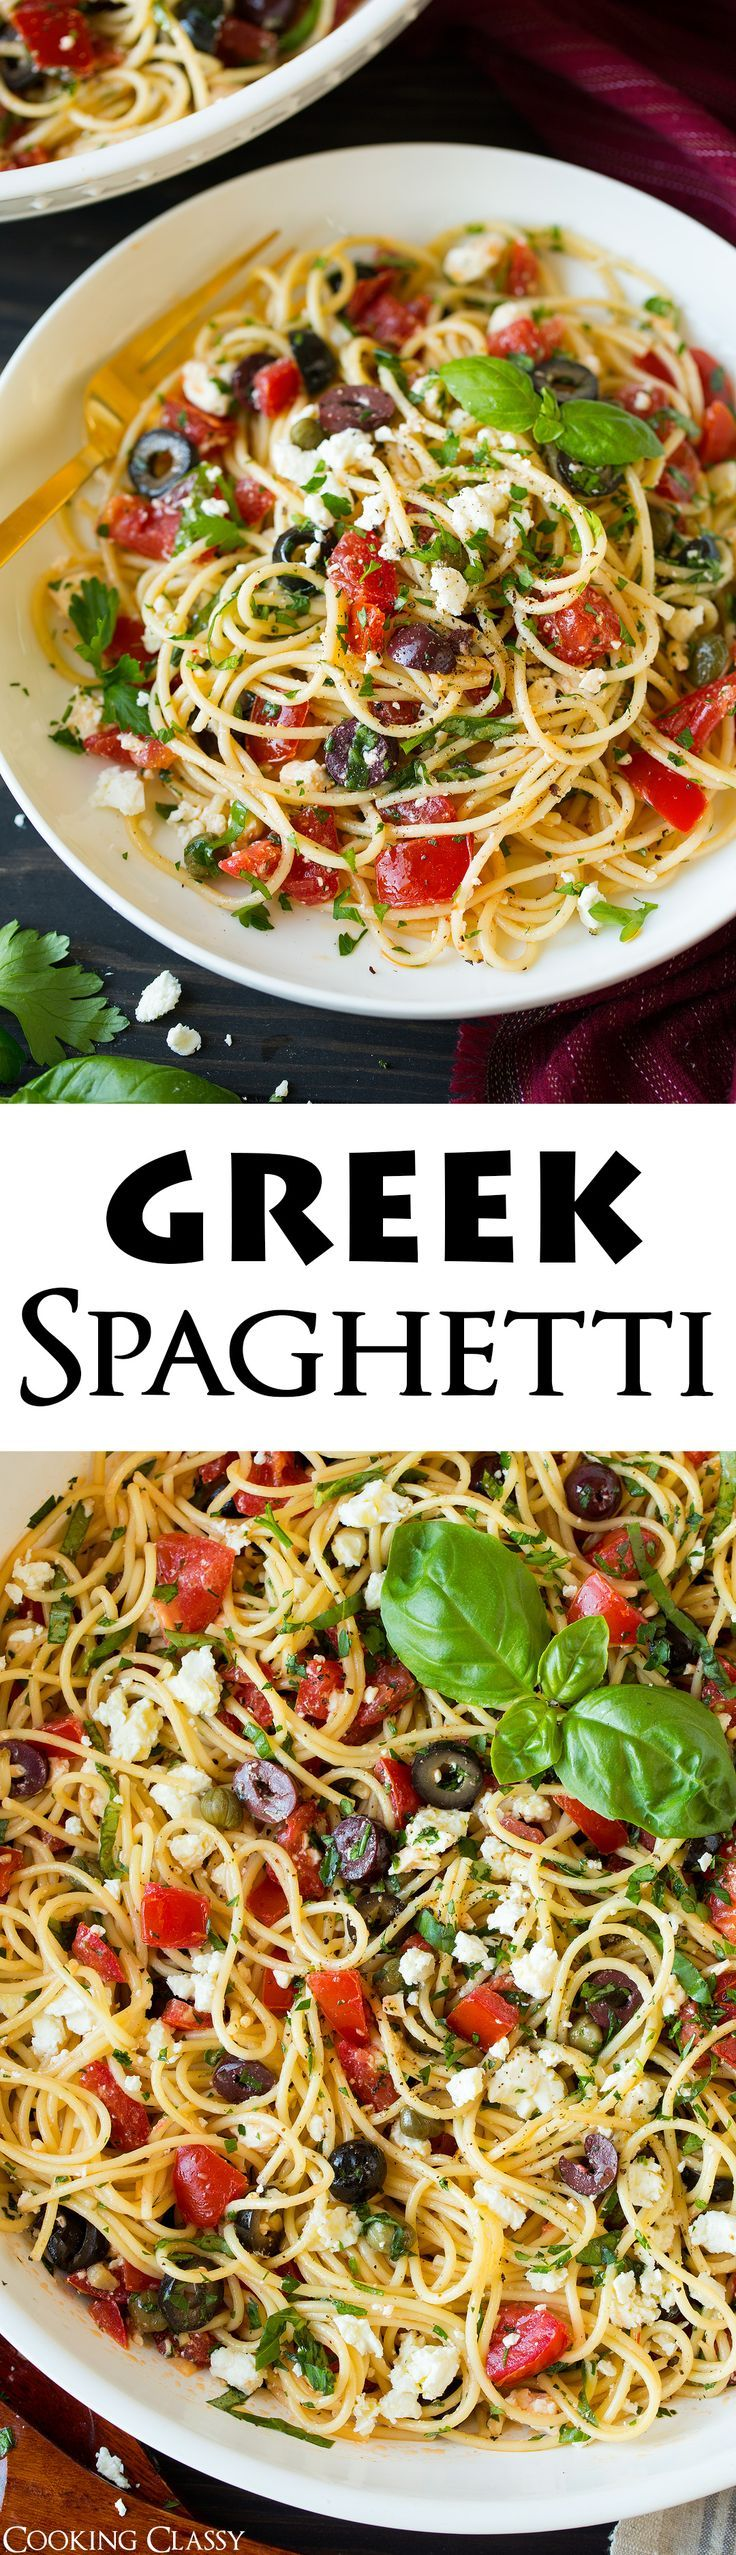 Greek Spaghetti. A delicious recipe for all the pasta lovers. A great and filling dinner option!